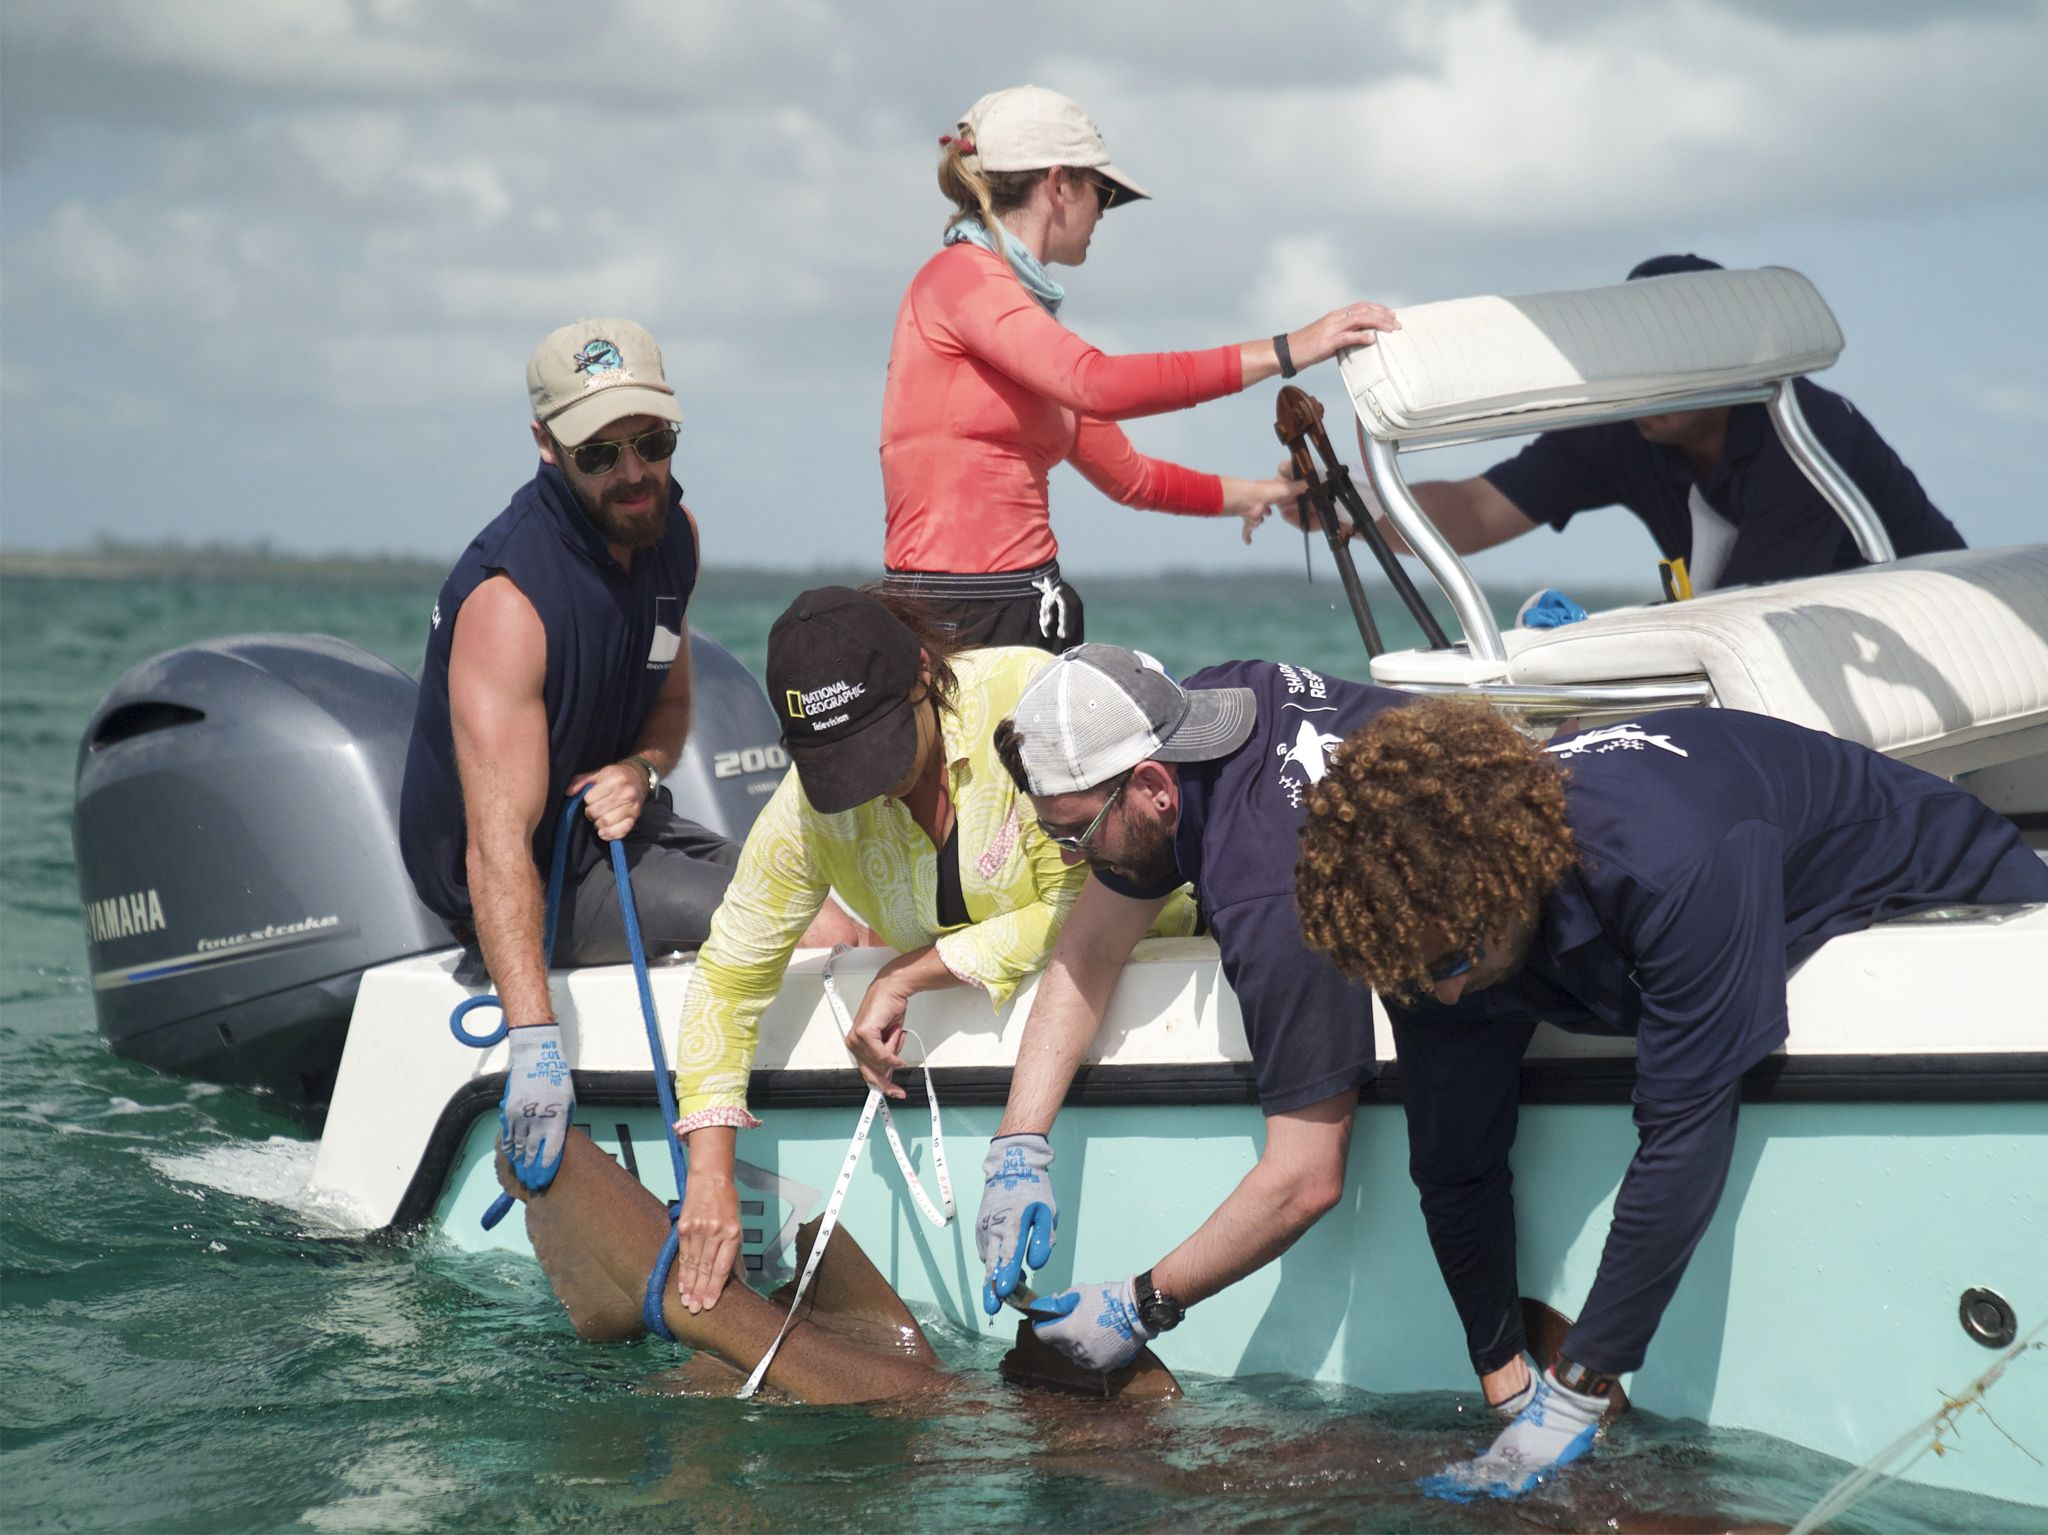 Tagging a shark in the Bahamas. This image is from Sharks of the Bermuda Triangle. [Photo of the day - July 2020]